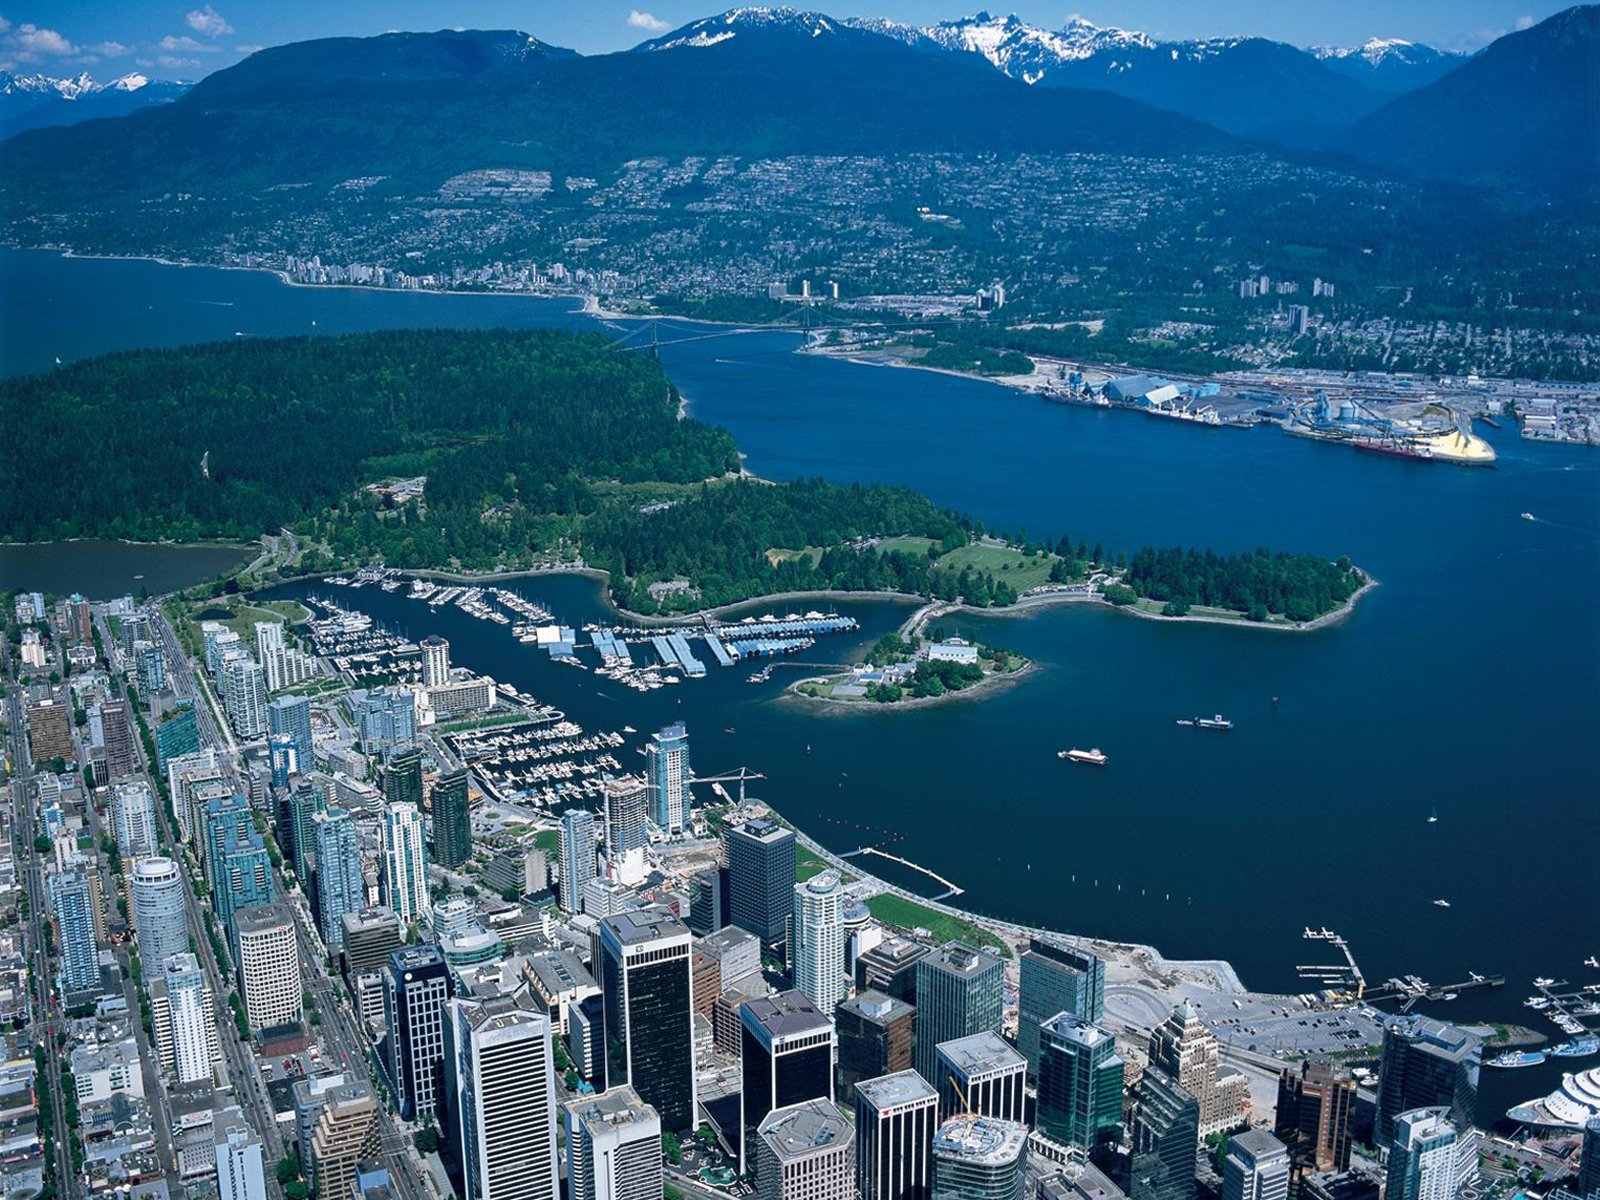 Vancouver Amazing Cool HD Wallpapers Wallpaper Vancouver 3455 high 1600x1200